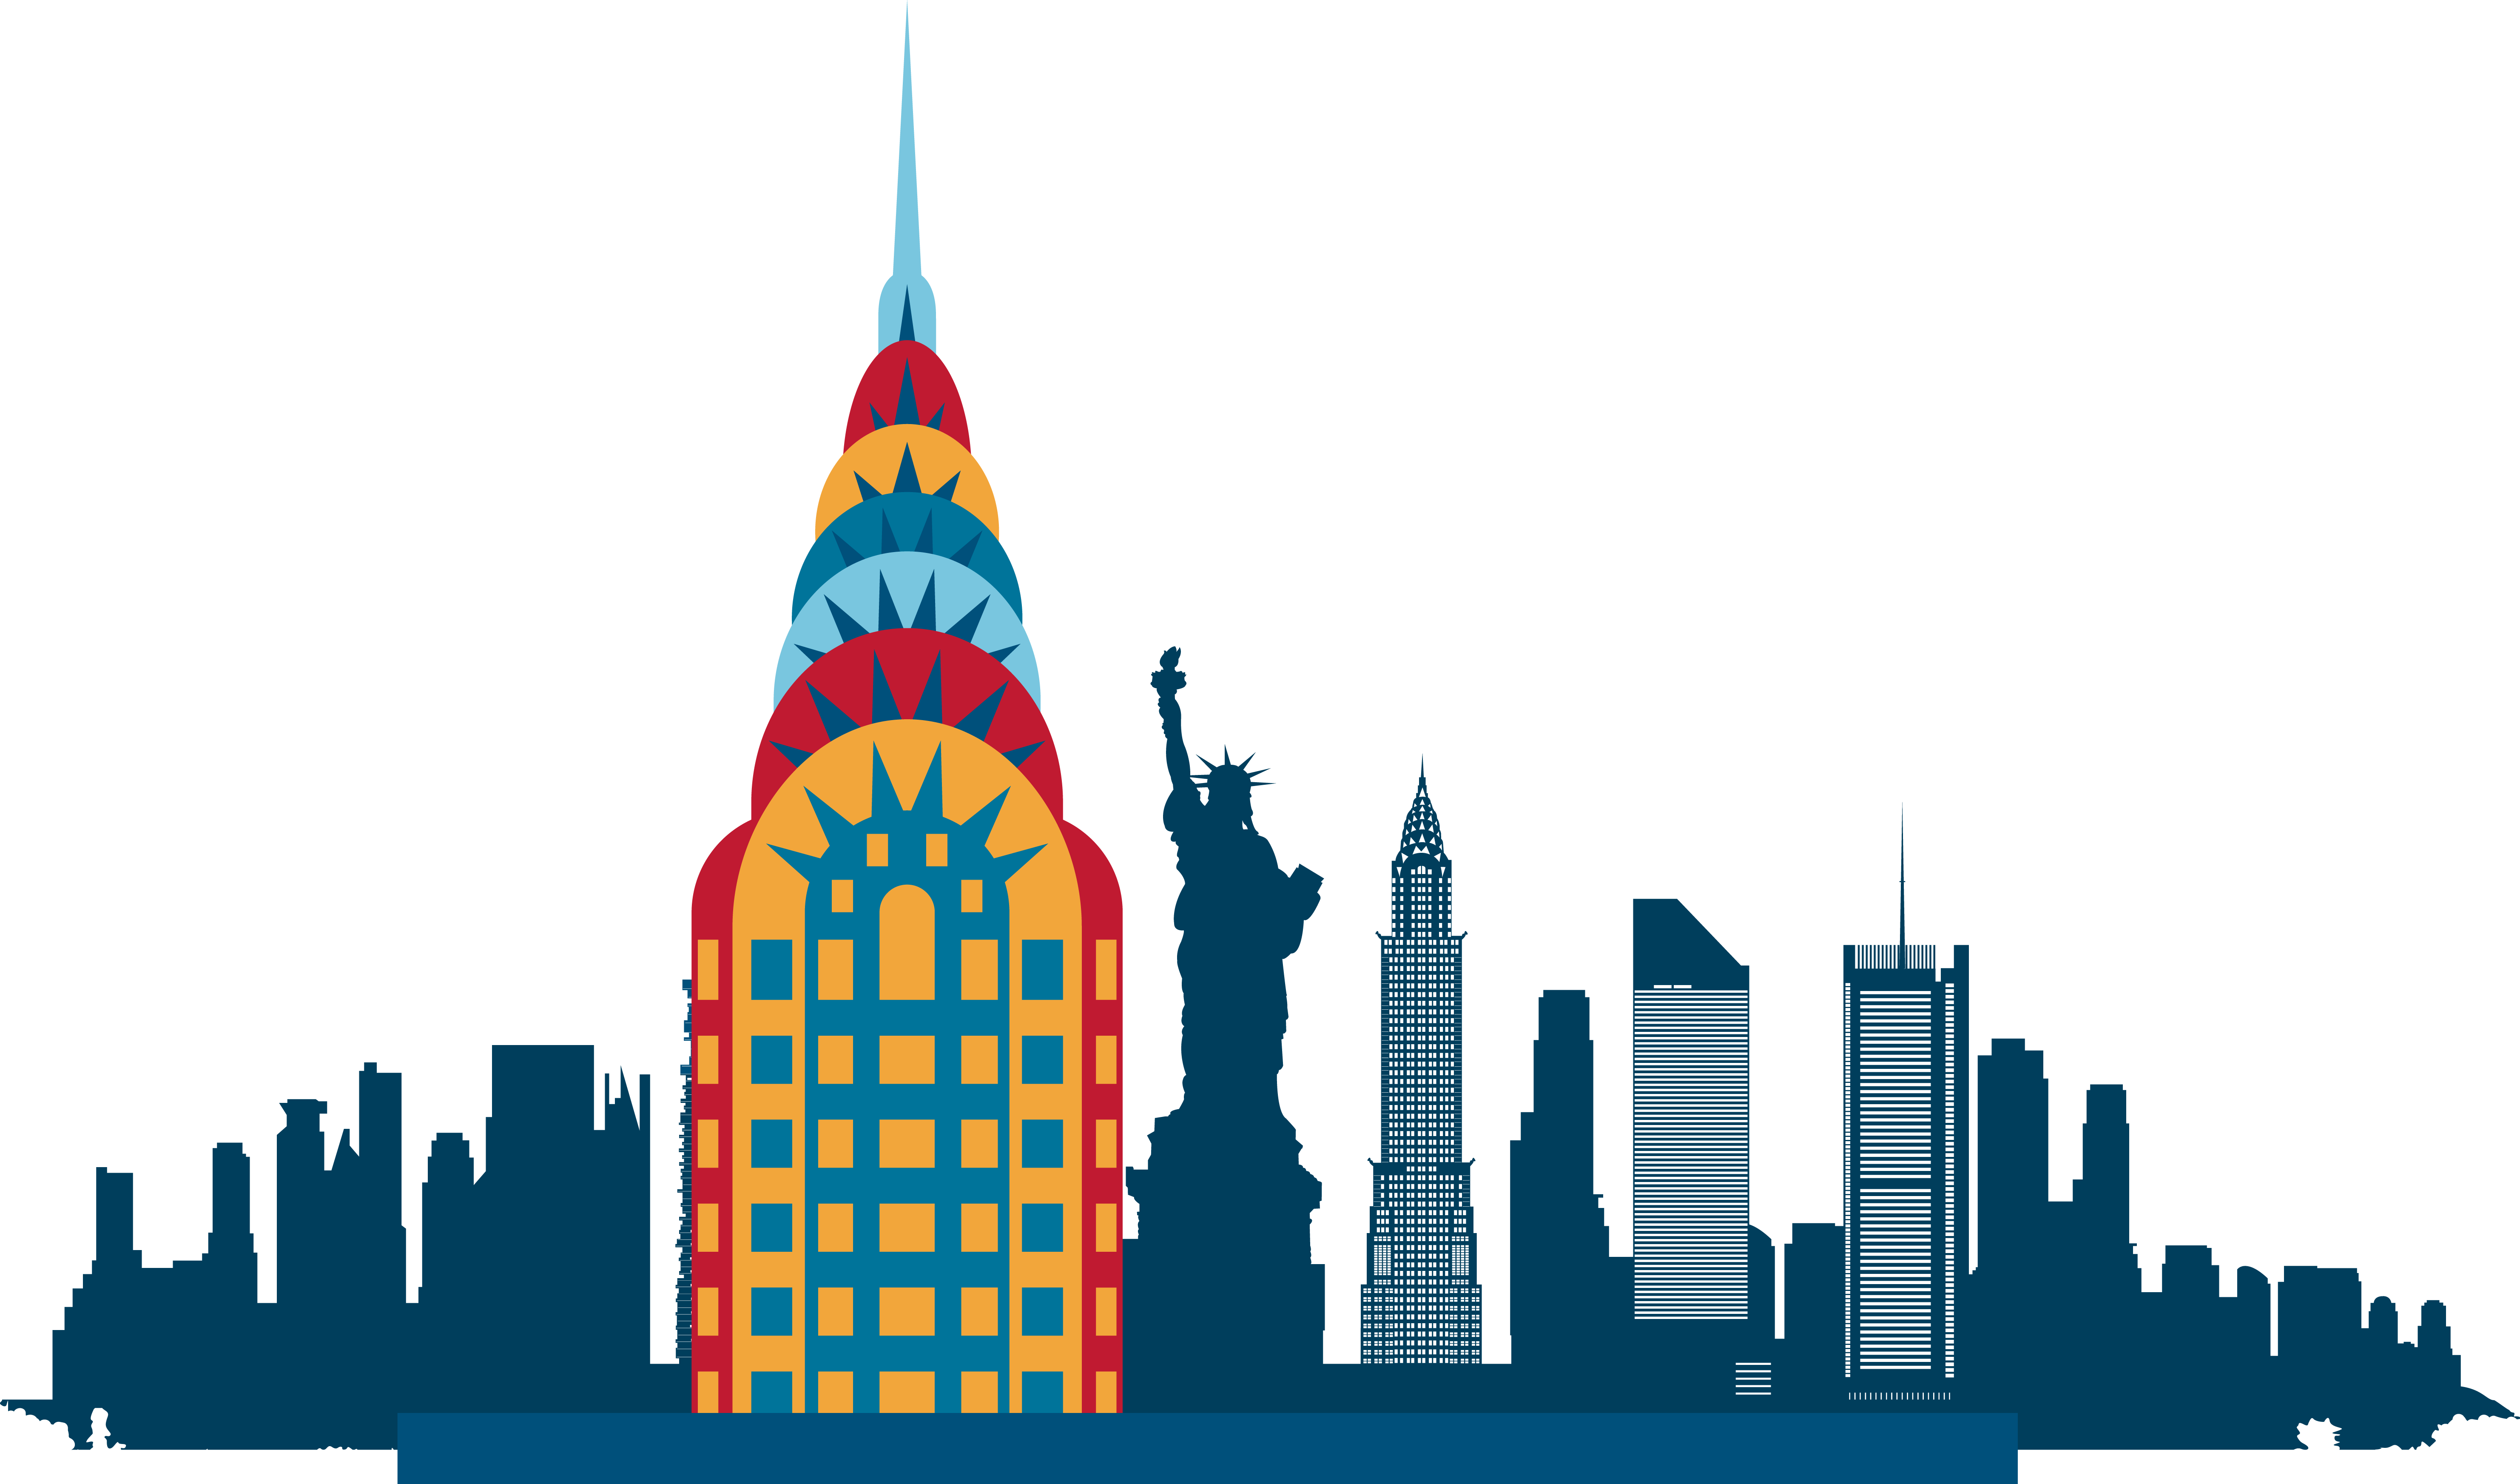 Silhouette nyc skyline at getdrawings free for personal use 5926x3489 new york city skyline silhouette illustration thecheapjerseys Choice Image